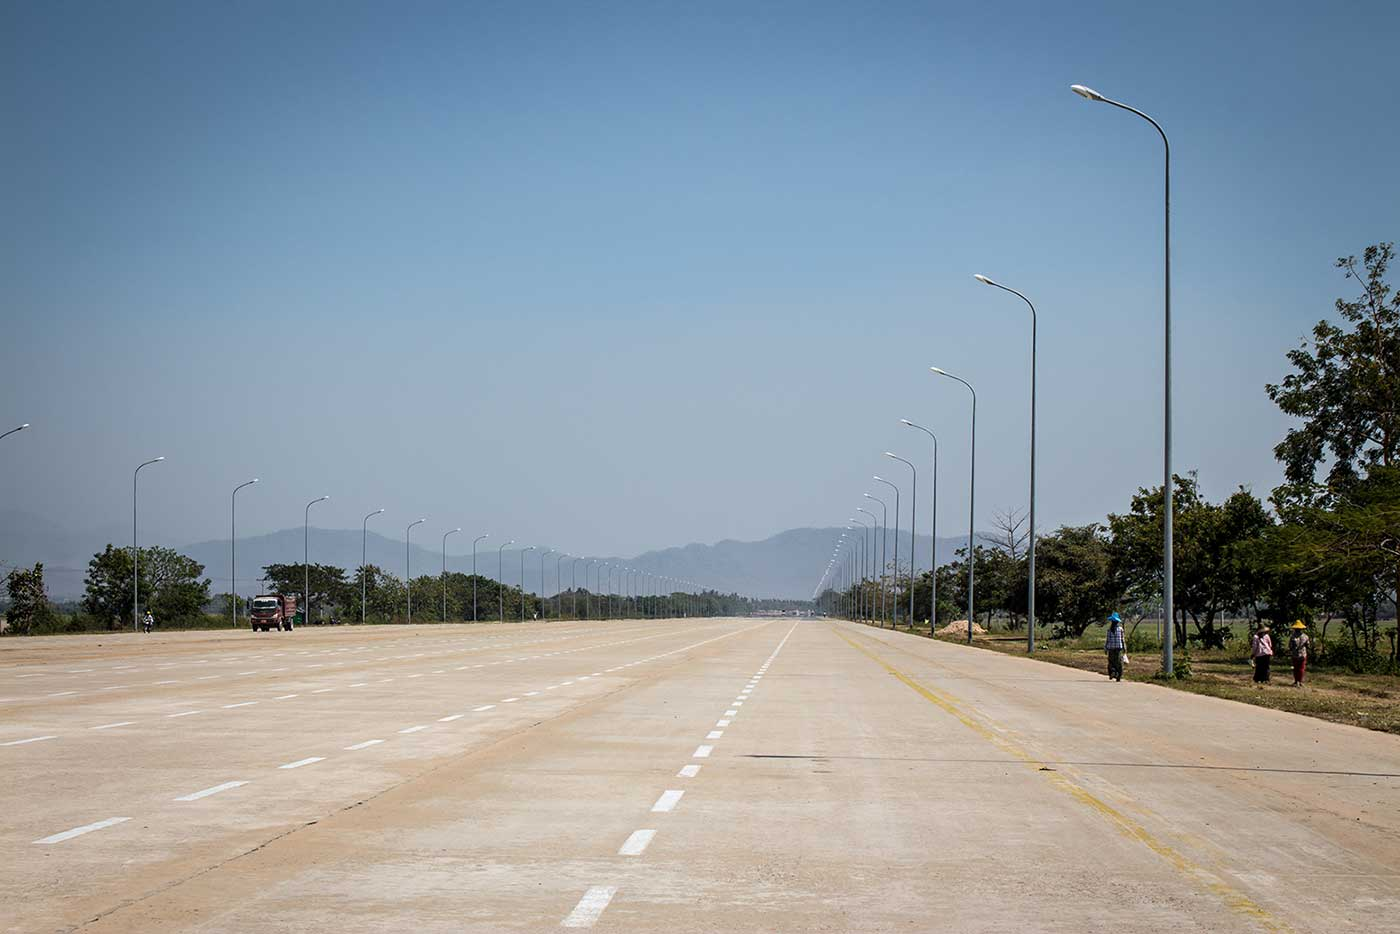 Light traffic on a Naypyidaw highway. Two lanes would have been ample, but here they have 14.